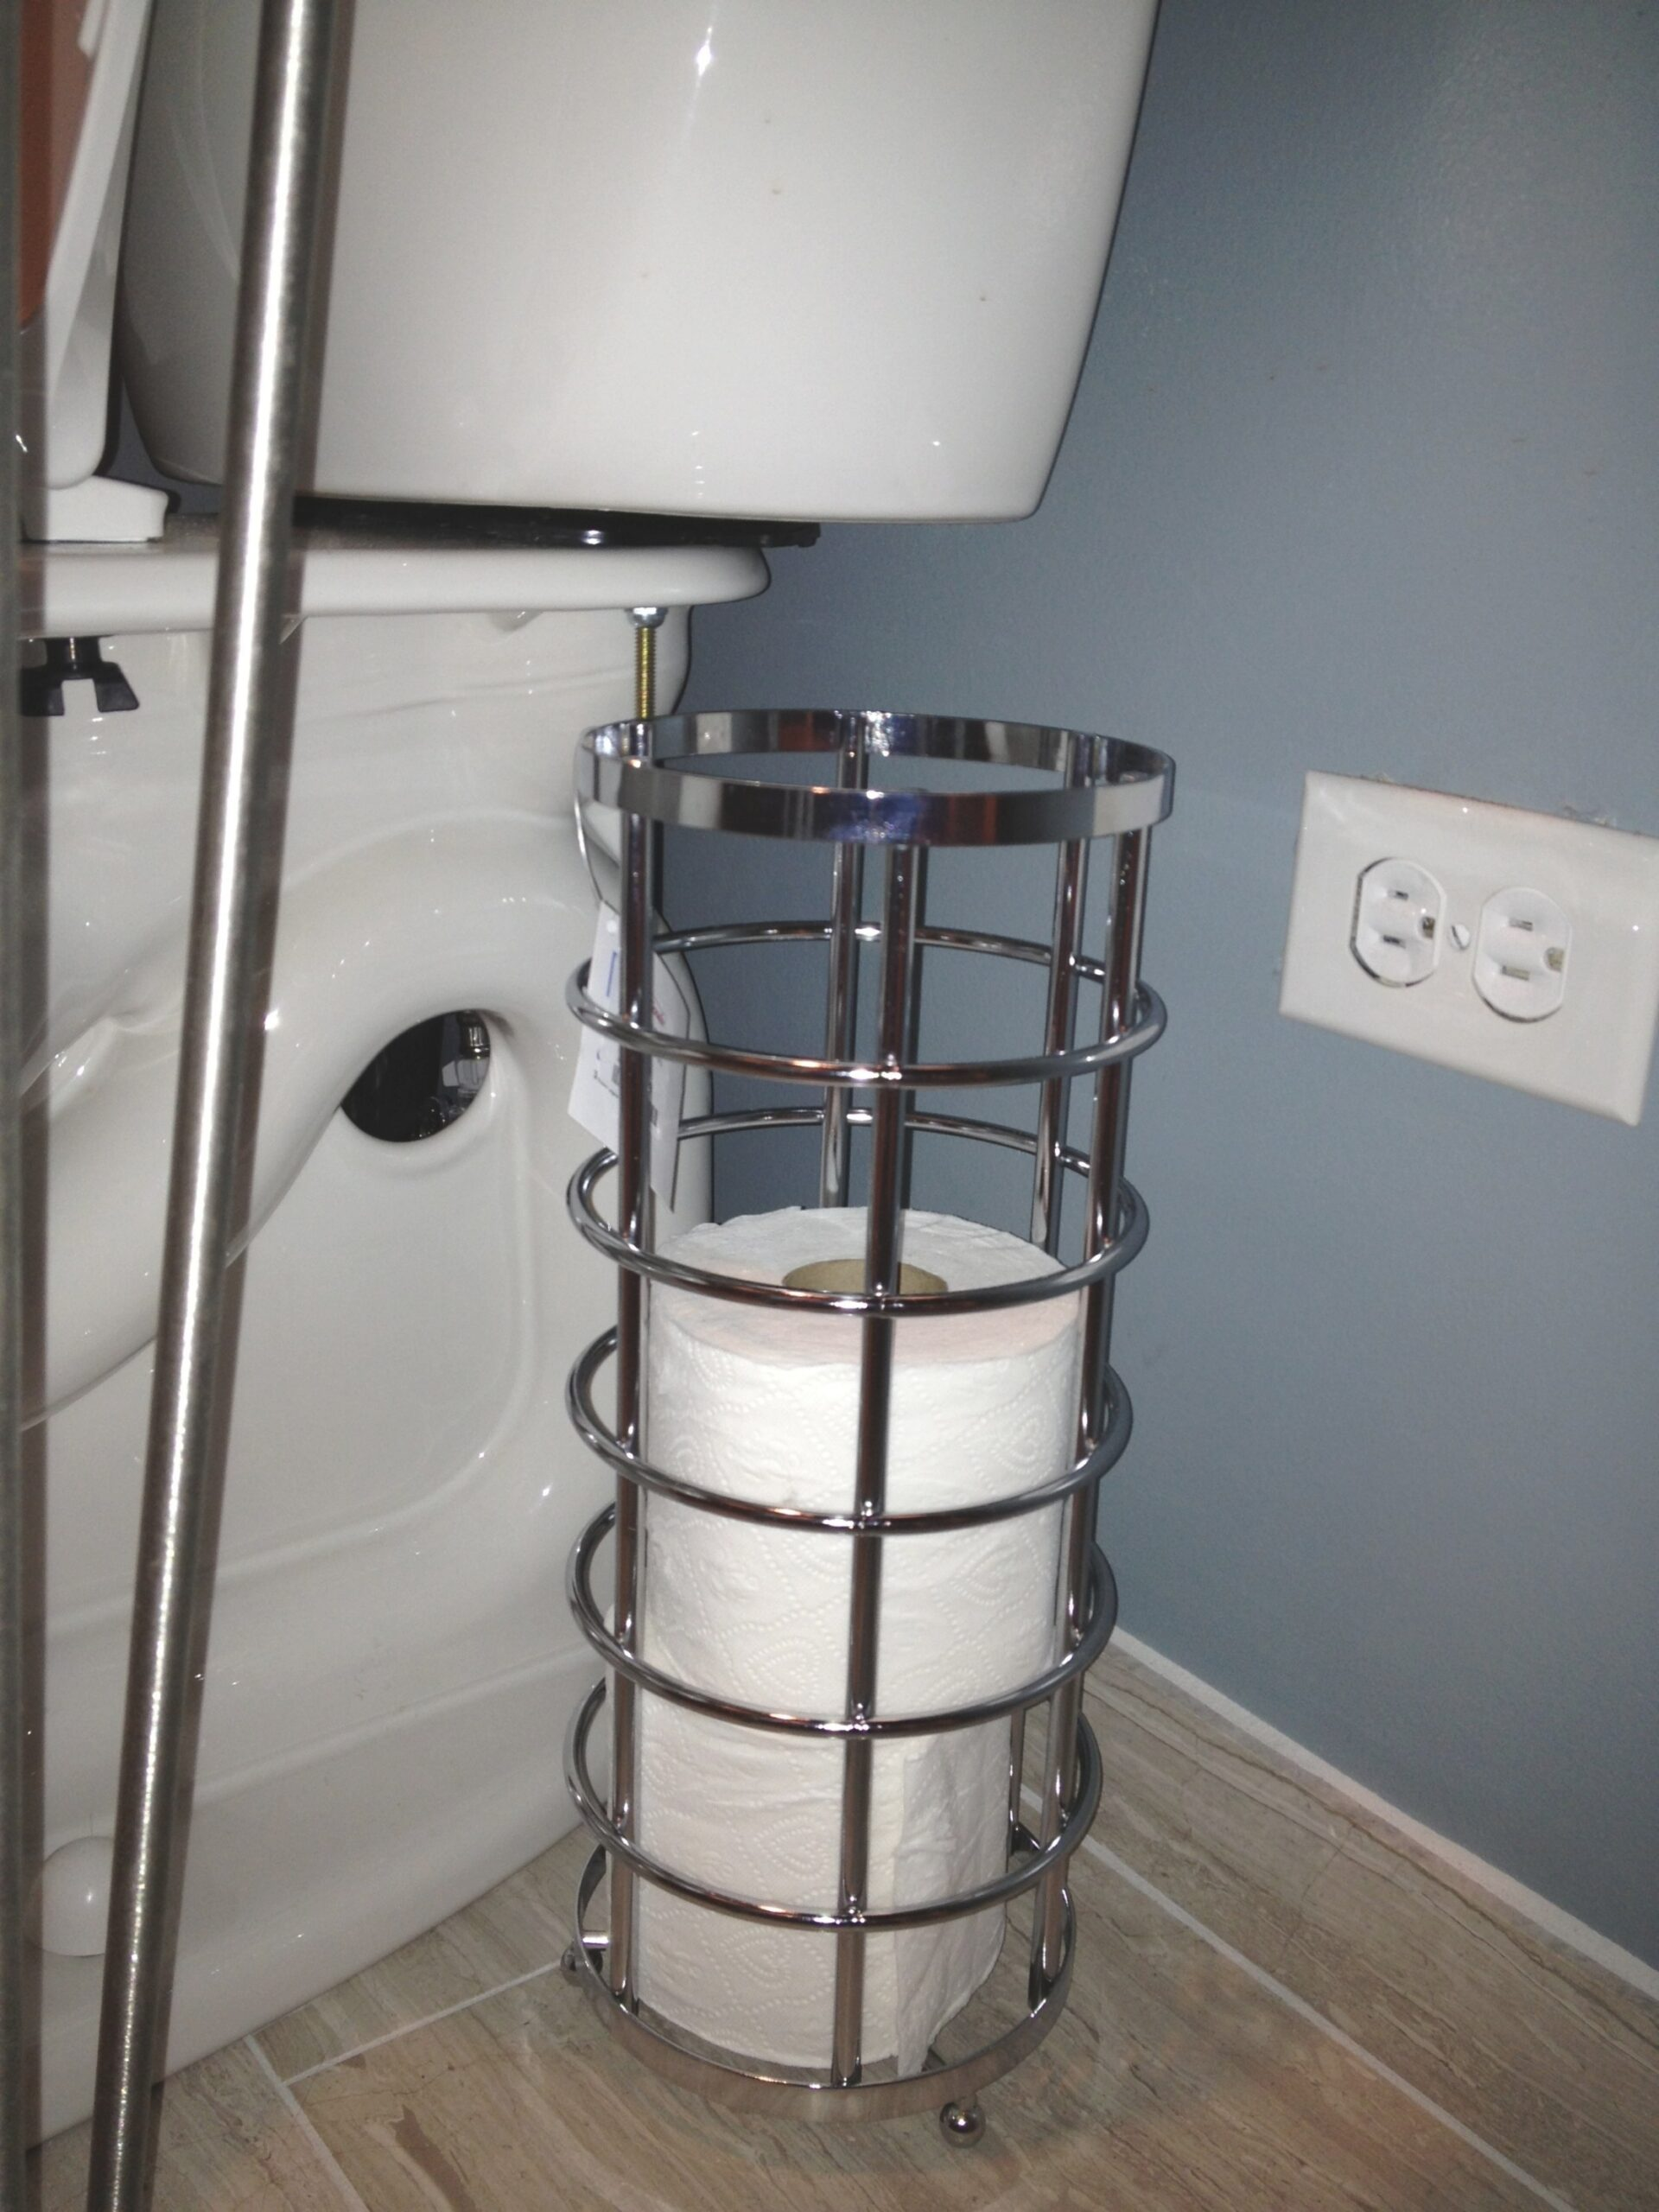 Storage For A Small Bathroom – Keeps On Ringing with regard to Where To Put Toilet Paper Holder In Small Bathroom